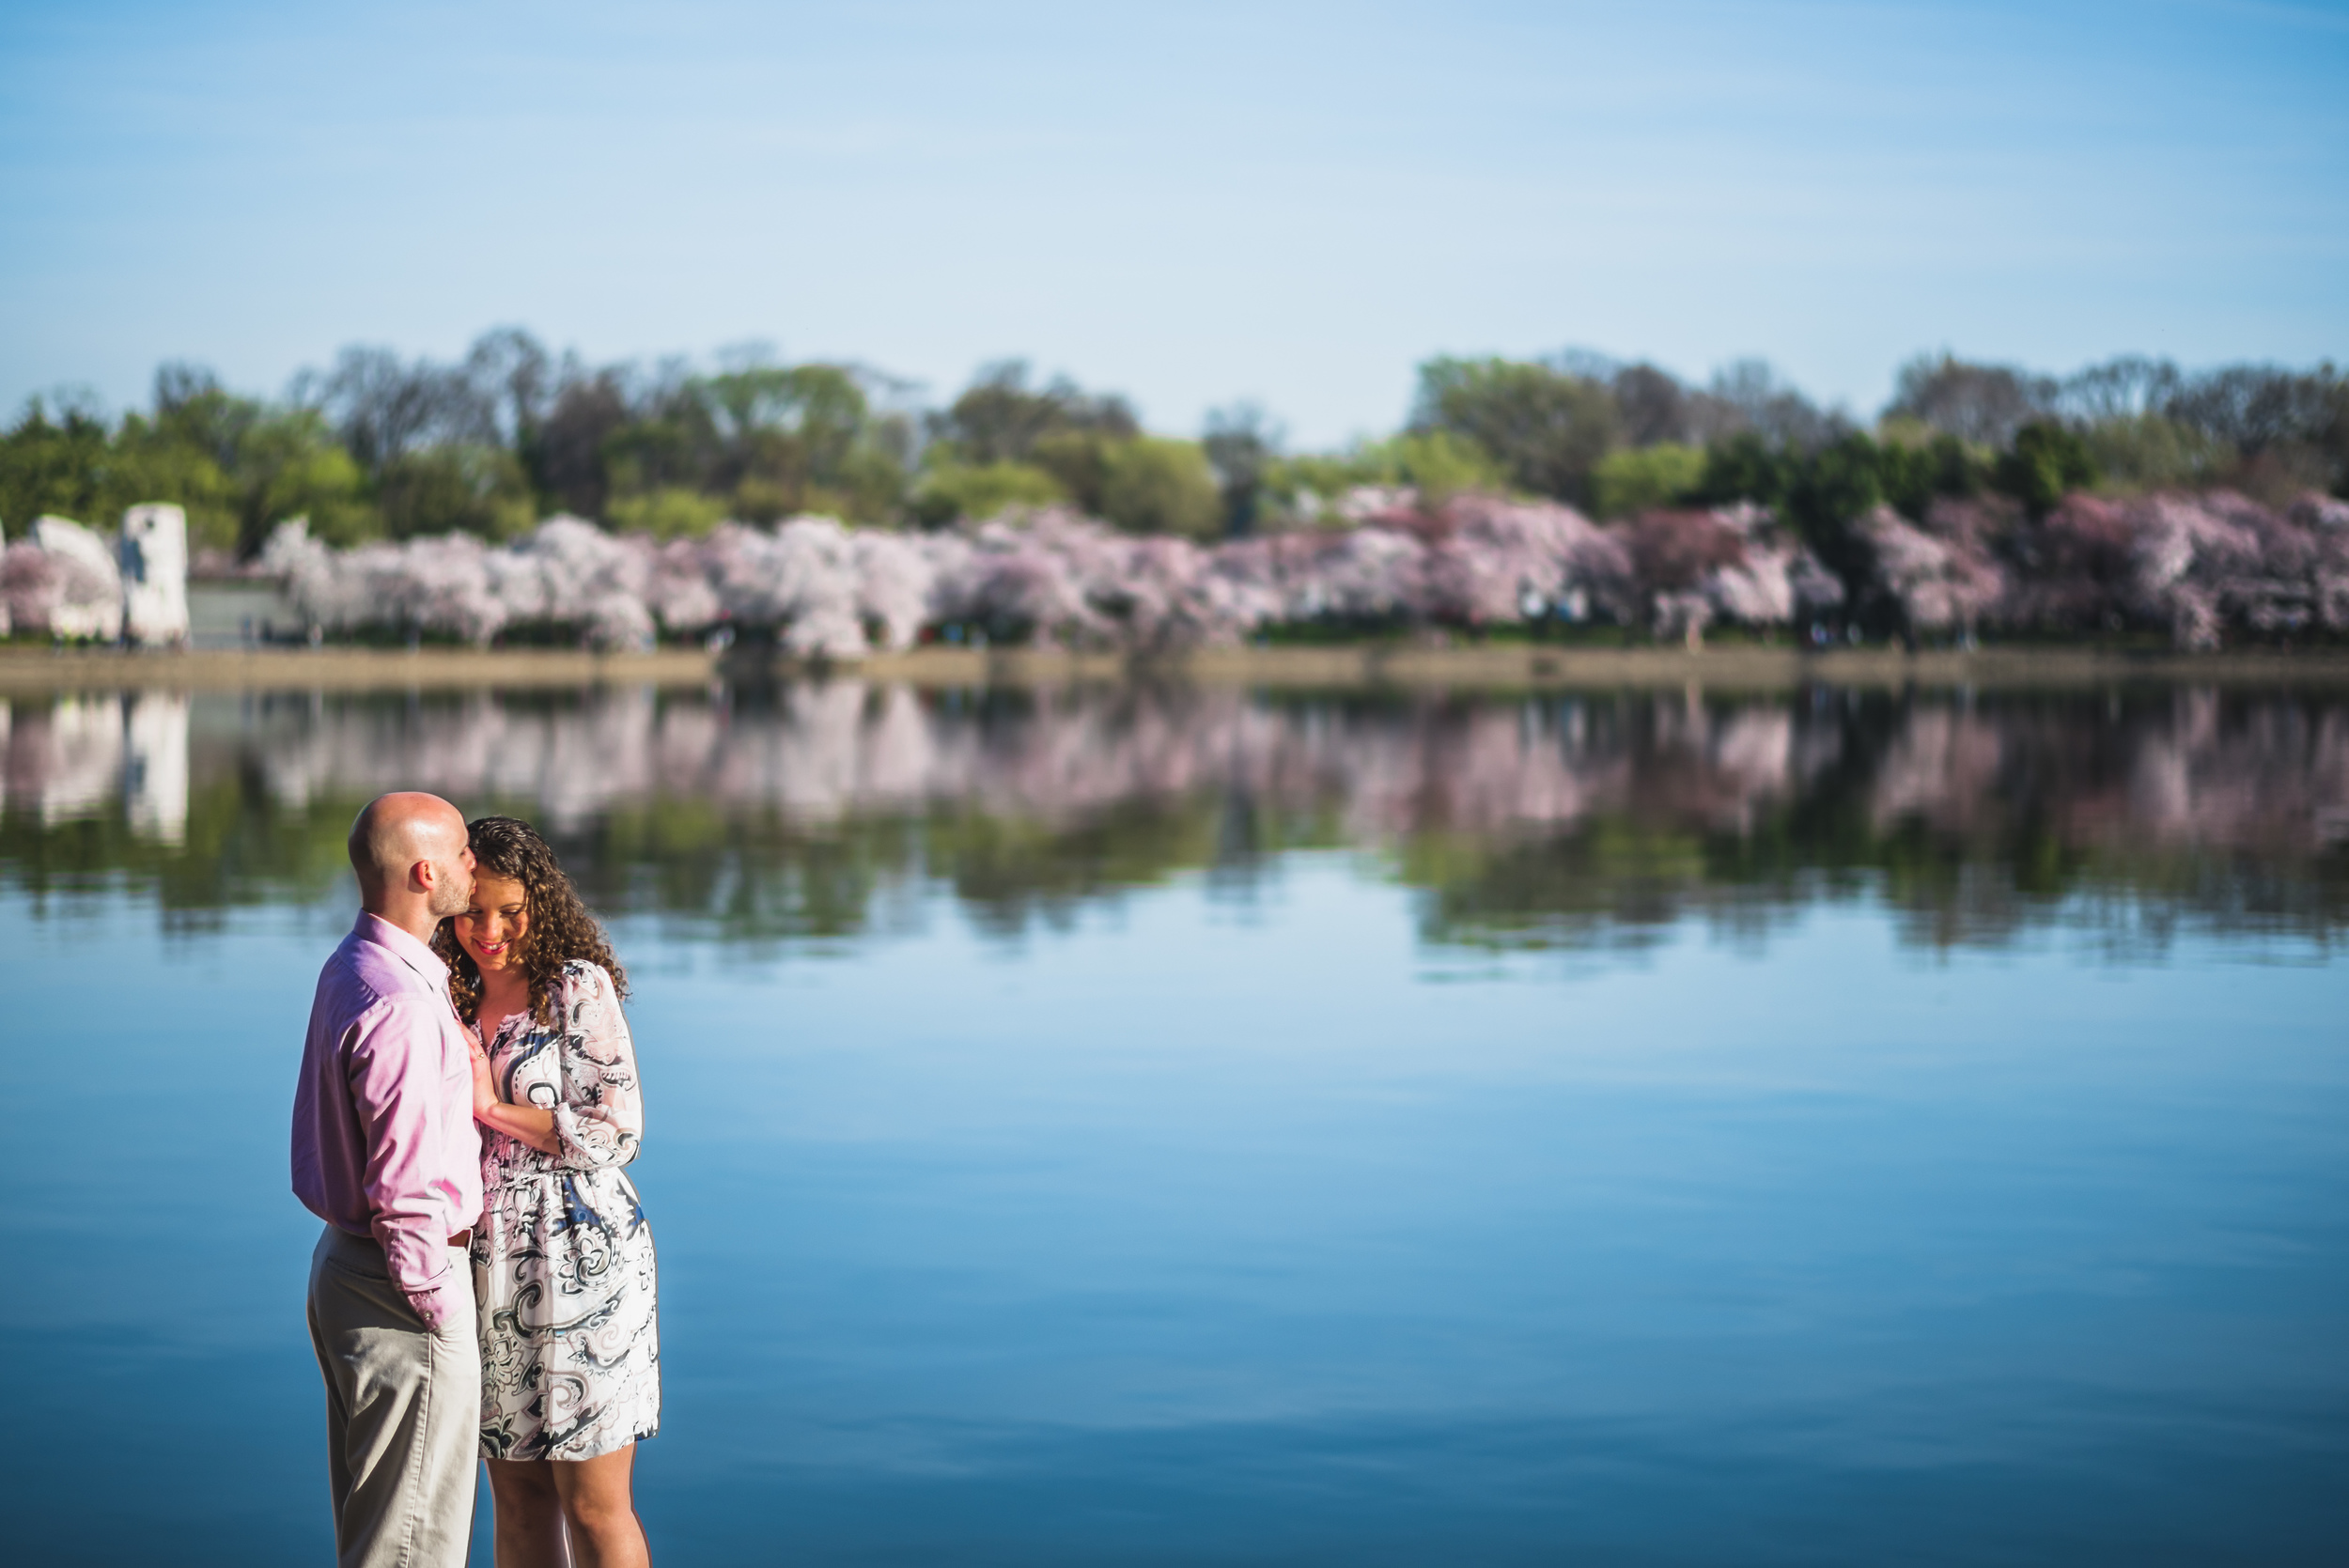 Tidal Basin  Couples Reflection.jpg